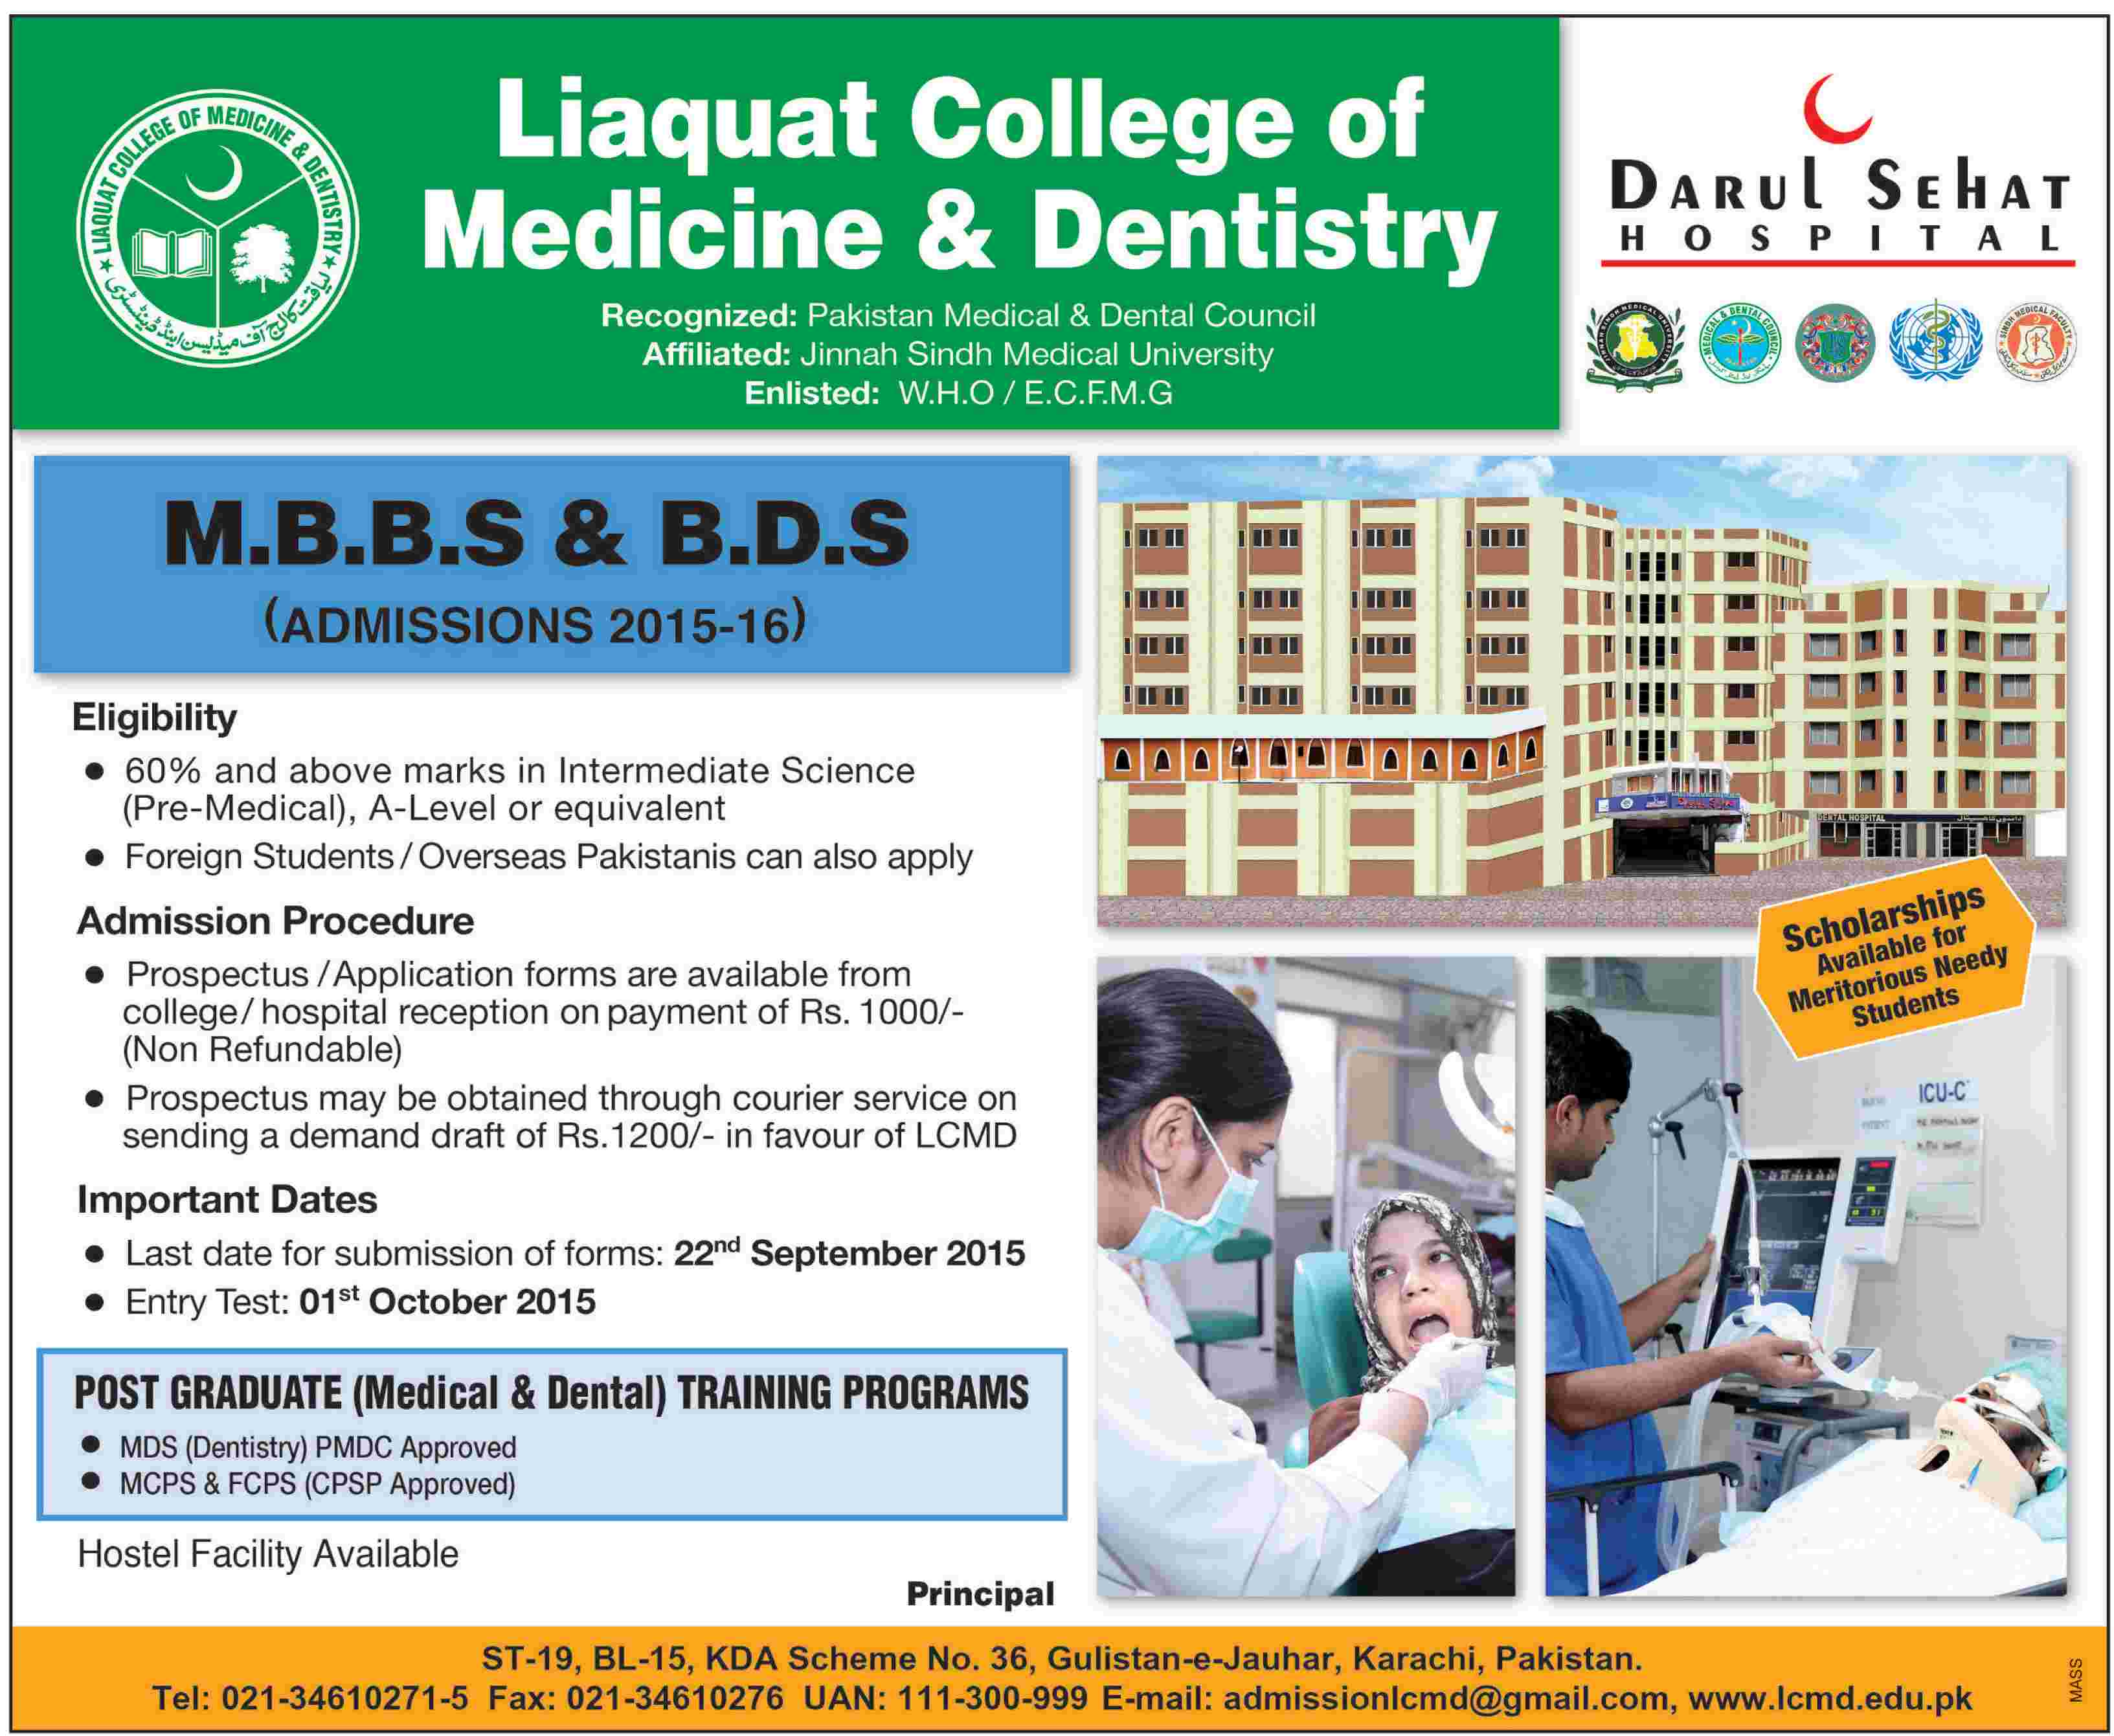 Liaquat College Of Medicine And Dentistry LCMD Admissions 2017 MBBS, BDS Form Last Date